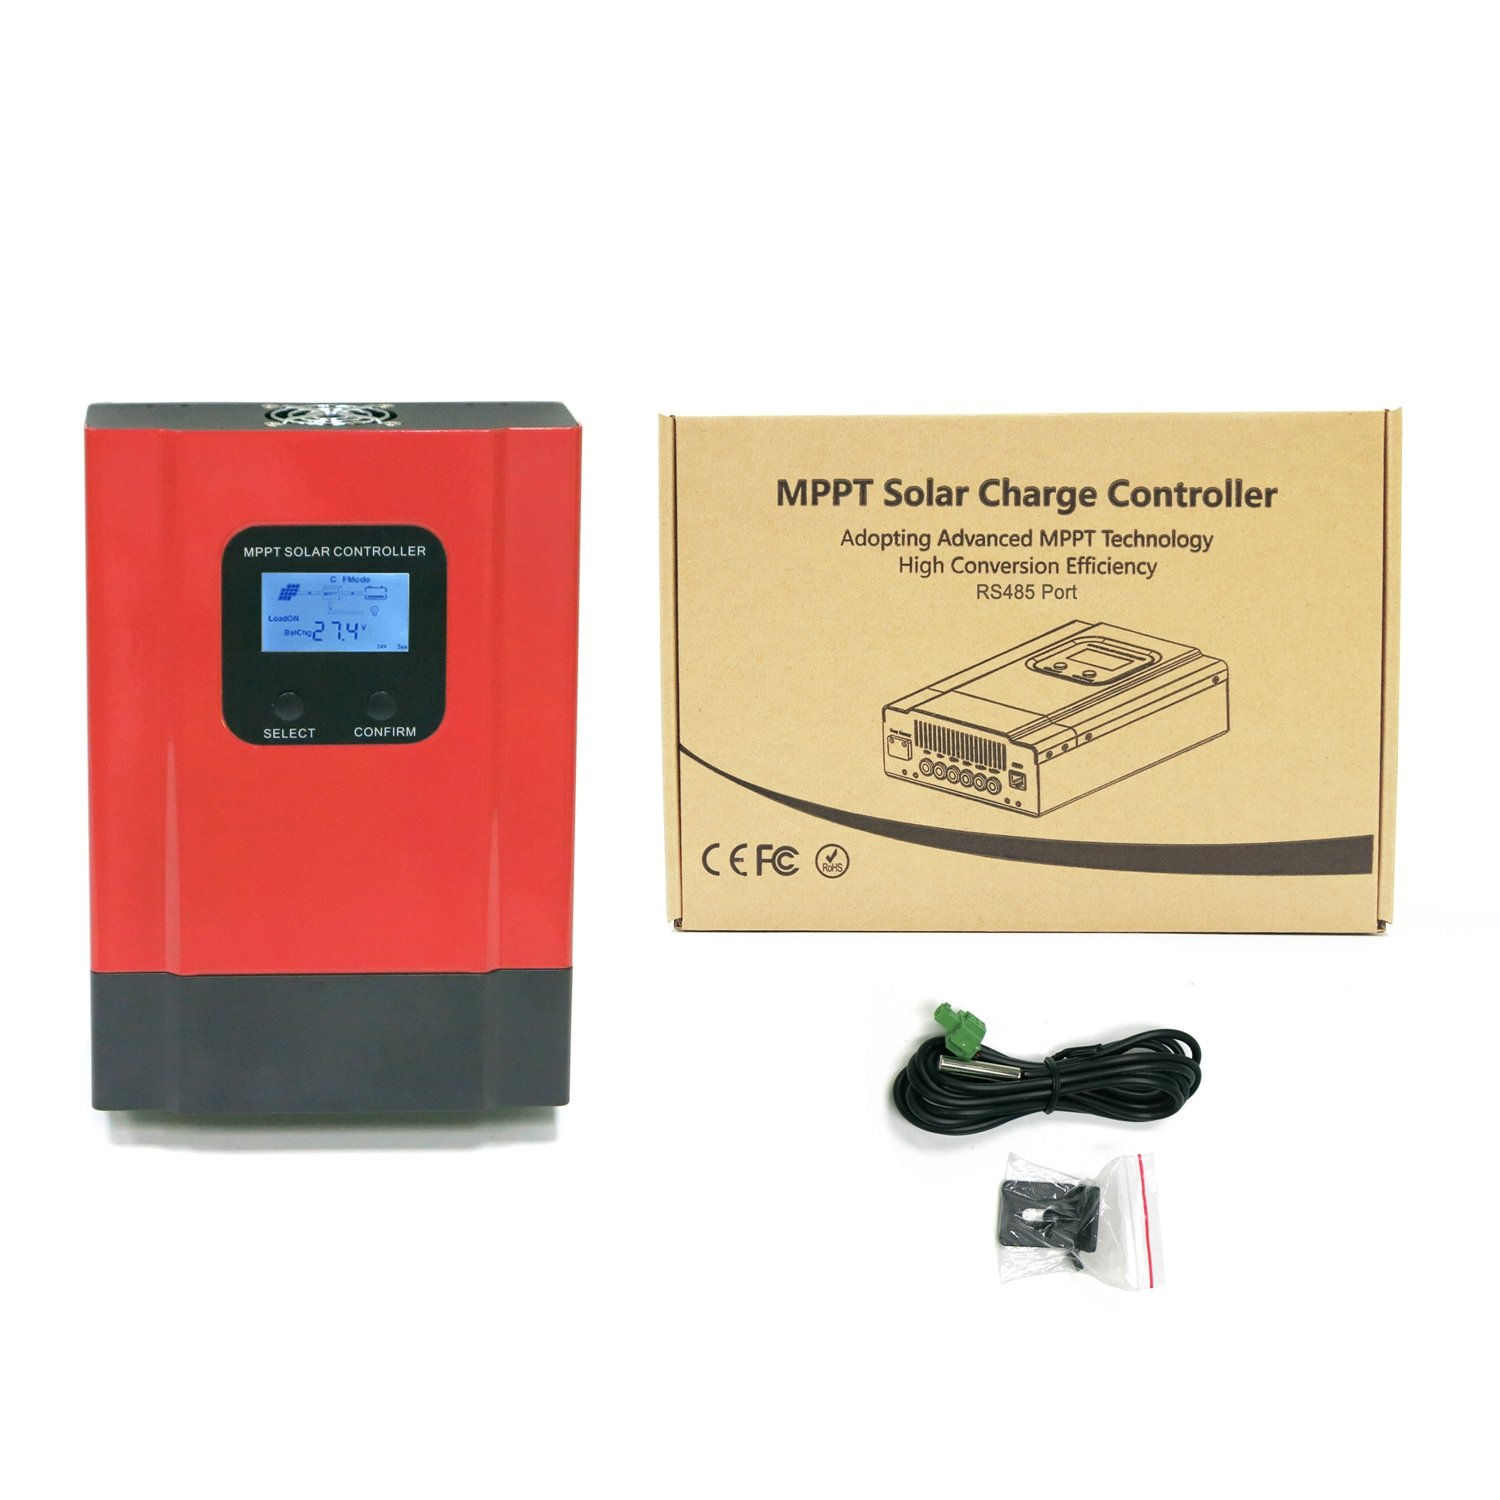 KRXNY 40A MPPT Solar Charge Controller DC 12V/24V/36V/48V Auto Battery Regulator PV 150V Input RS485 Communication by KRXNY (Image #5)